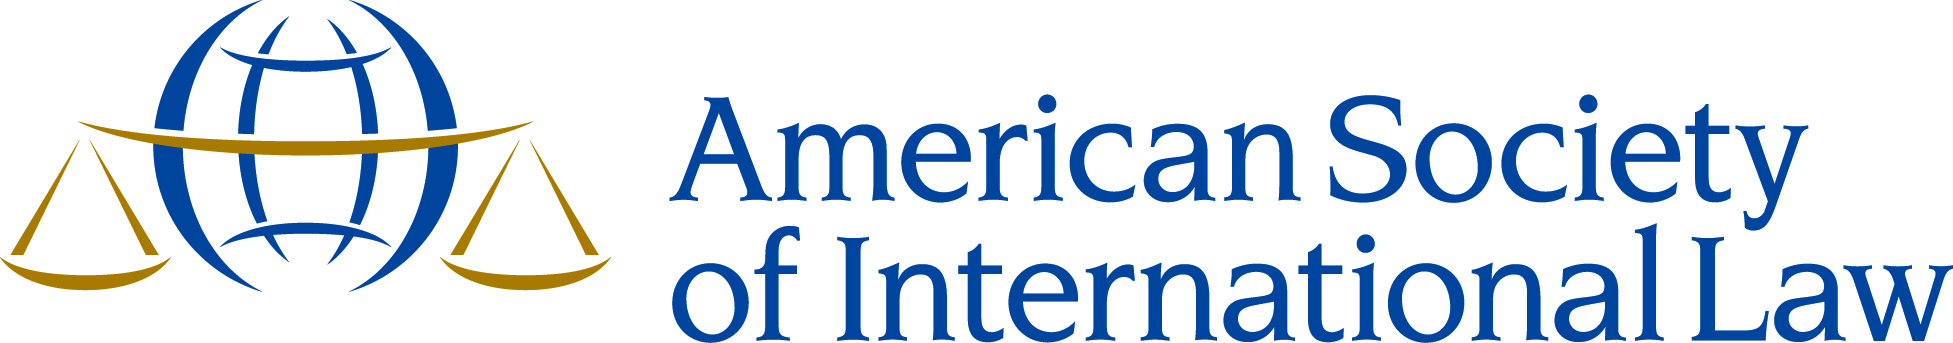 American Society of International Law | IntLawGrrls